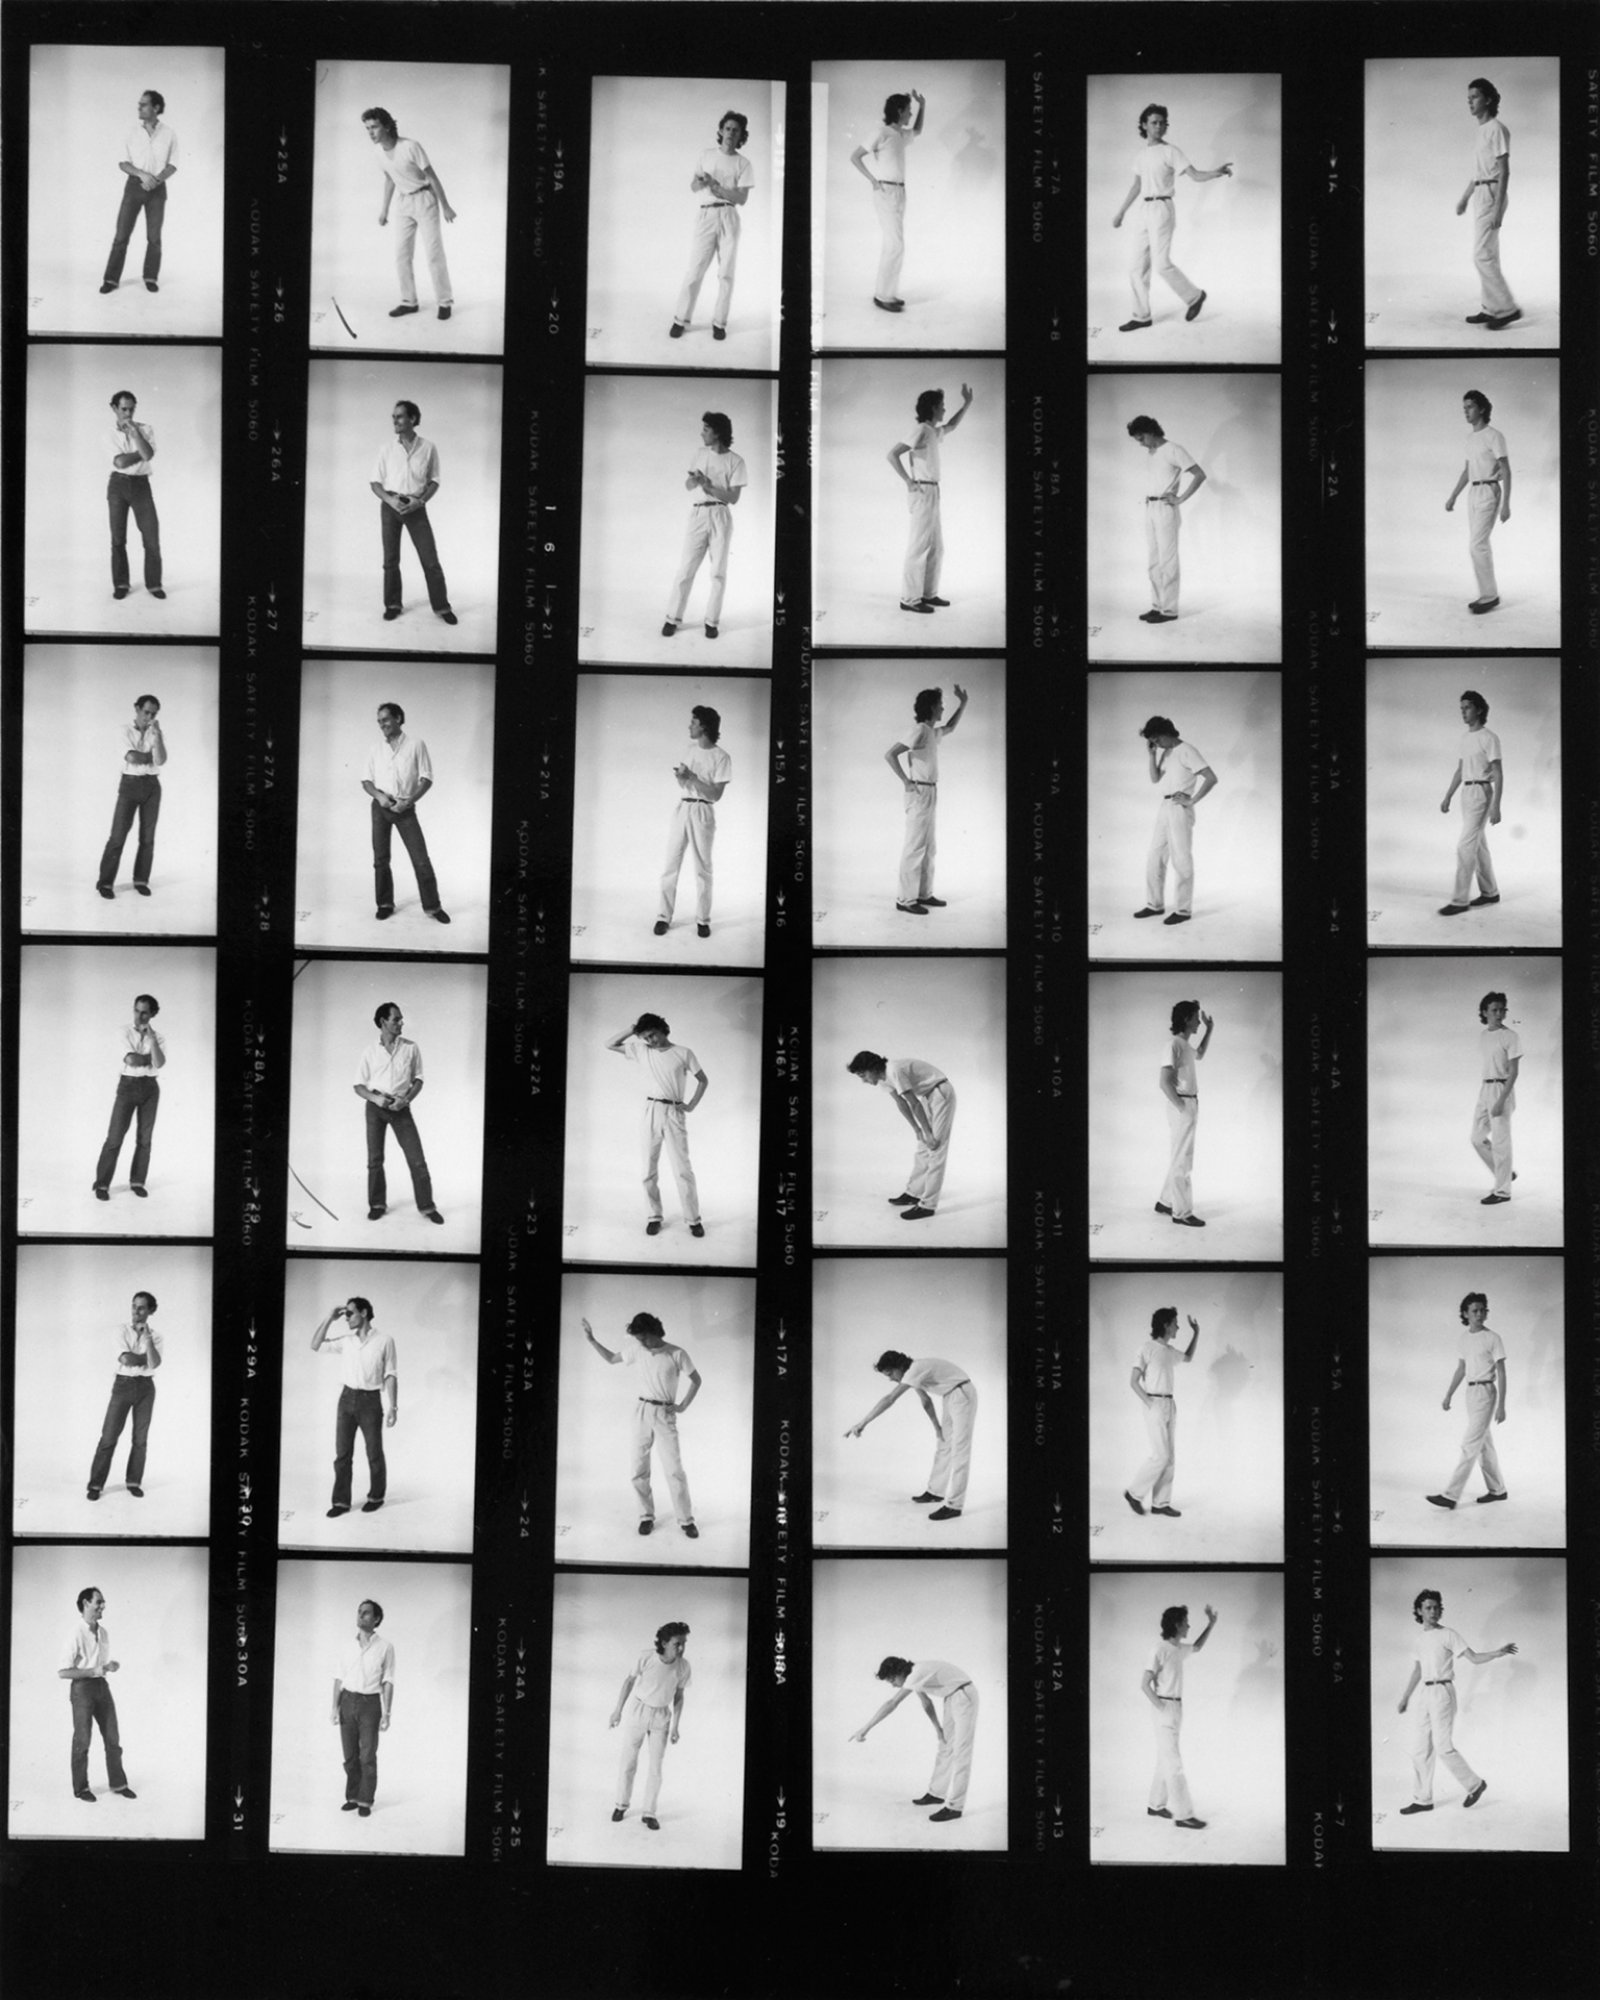 Ian Wallace, Contact sheets for Lookout, 1979, silver gelatin prints, 10 contact sheets, each 10 x 8 in. (25 x 20 cm)